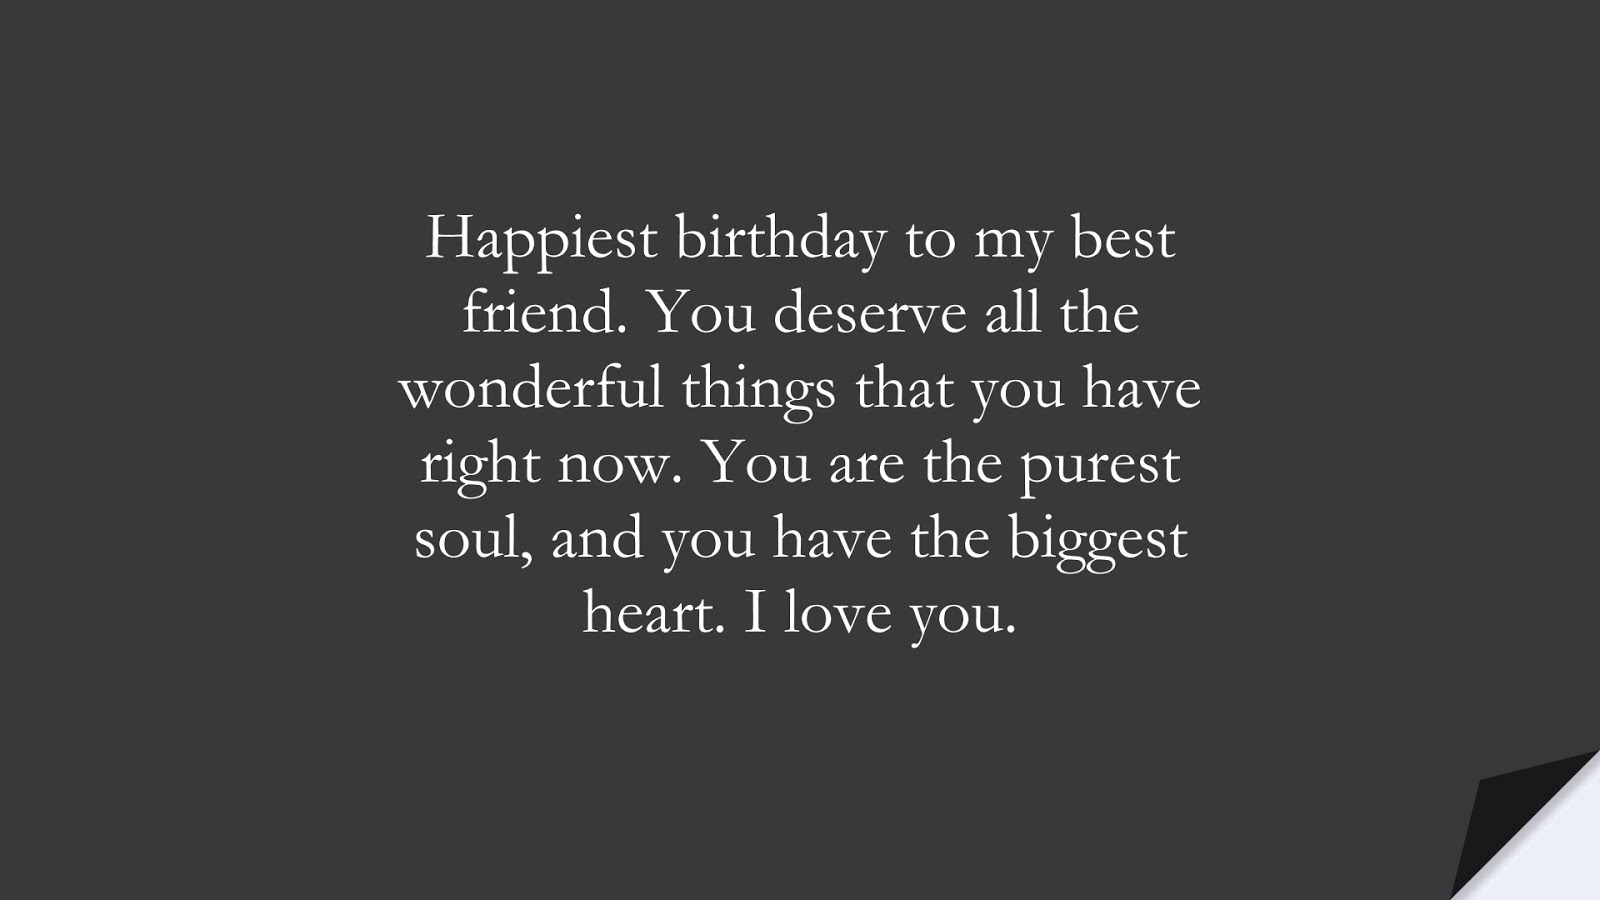 Happiest birthday to my best friend. You deserve all the wonderful things that you have right now. You are the purest soul, and you have the biggest heart. I love you.FALSE